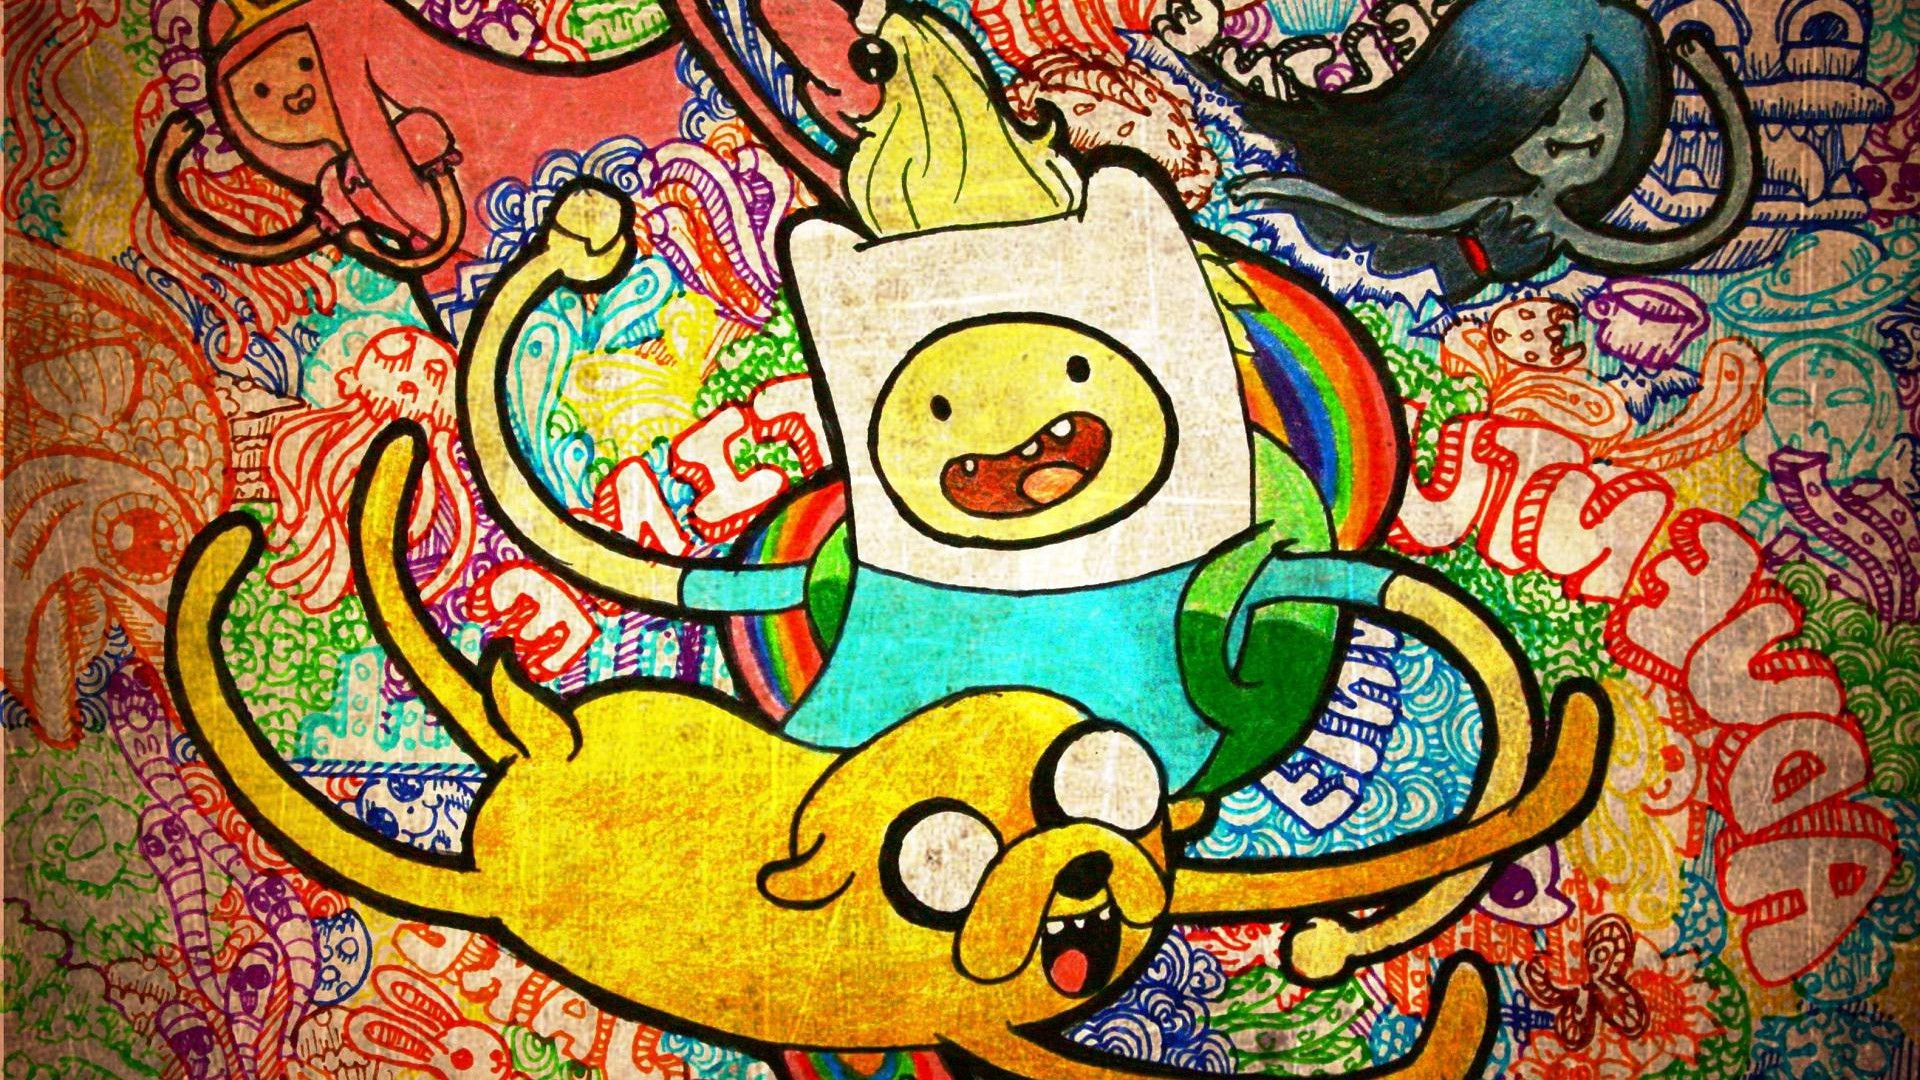 Adventure Time Graffiti Wallpaper by HD Wallpapers Daily